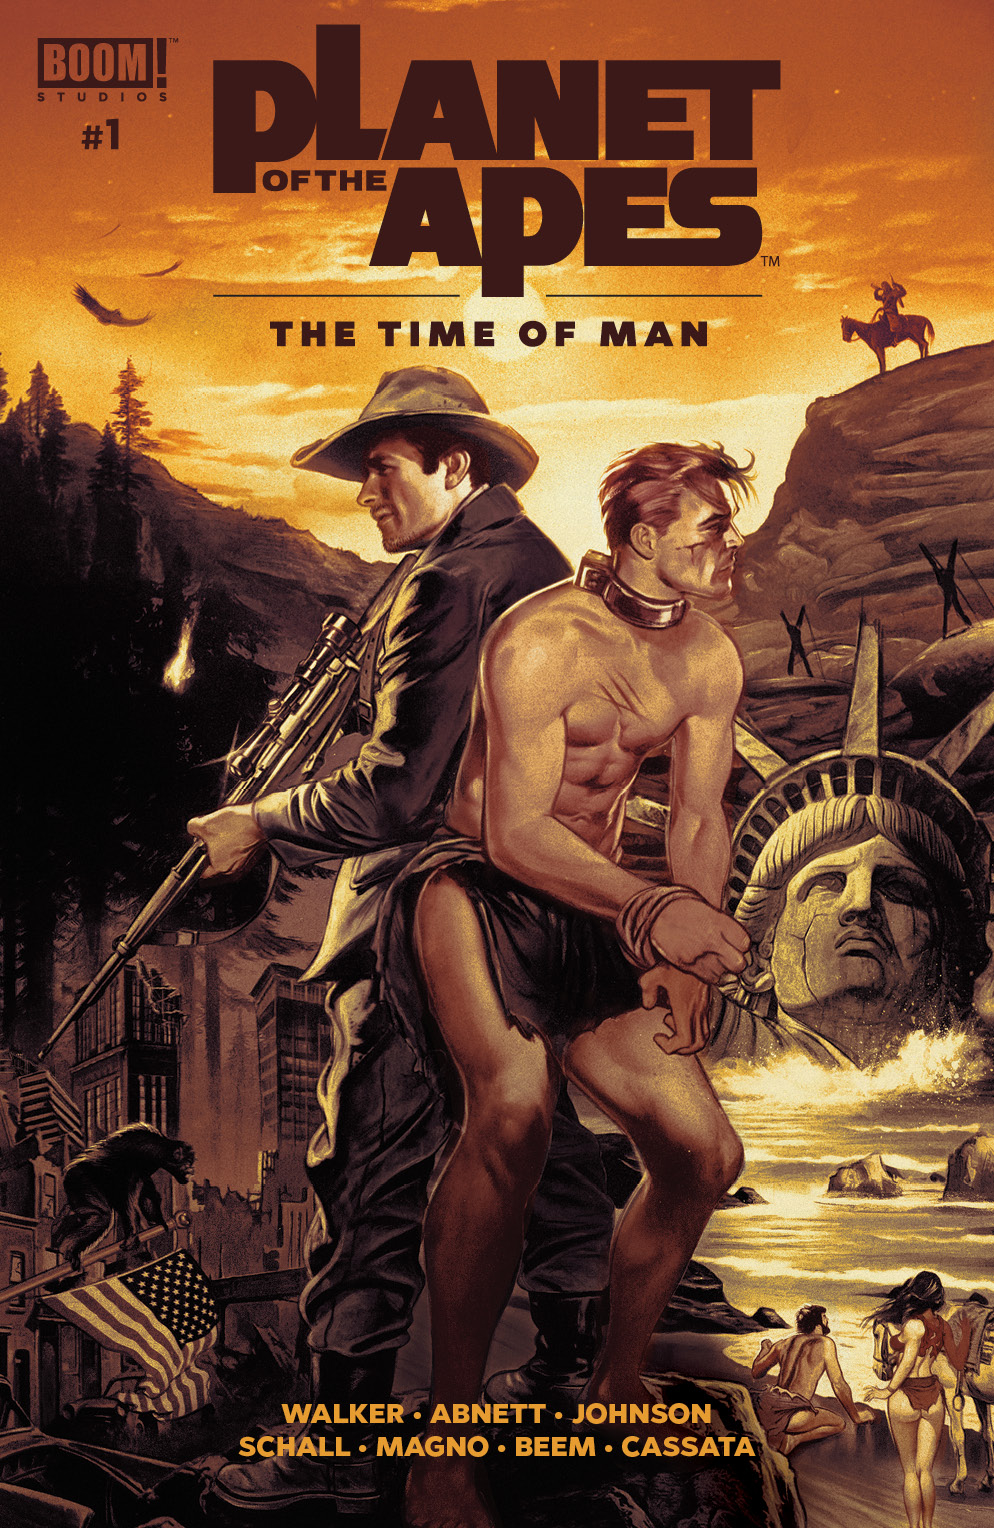 PLANET OF THE APES TIME OF MAN #1 MAIN